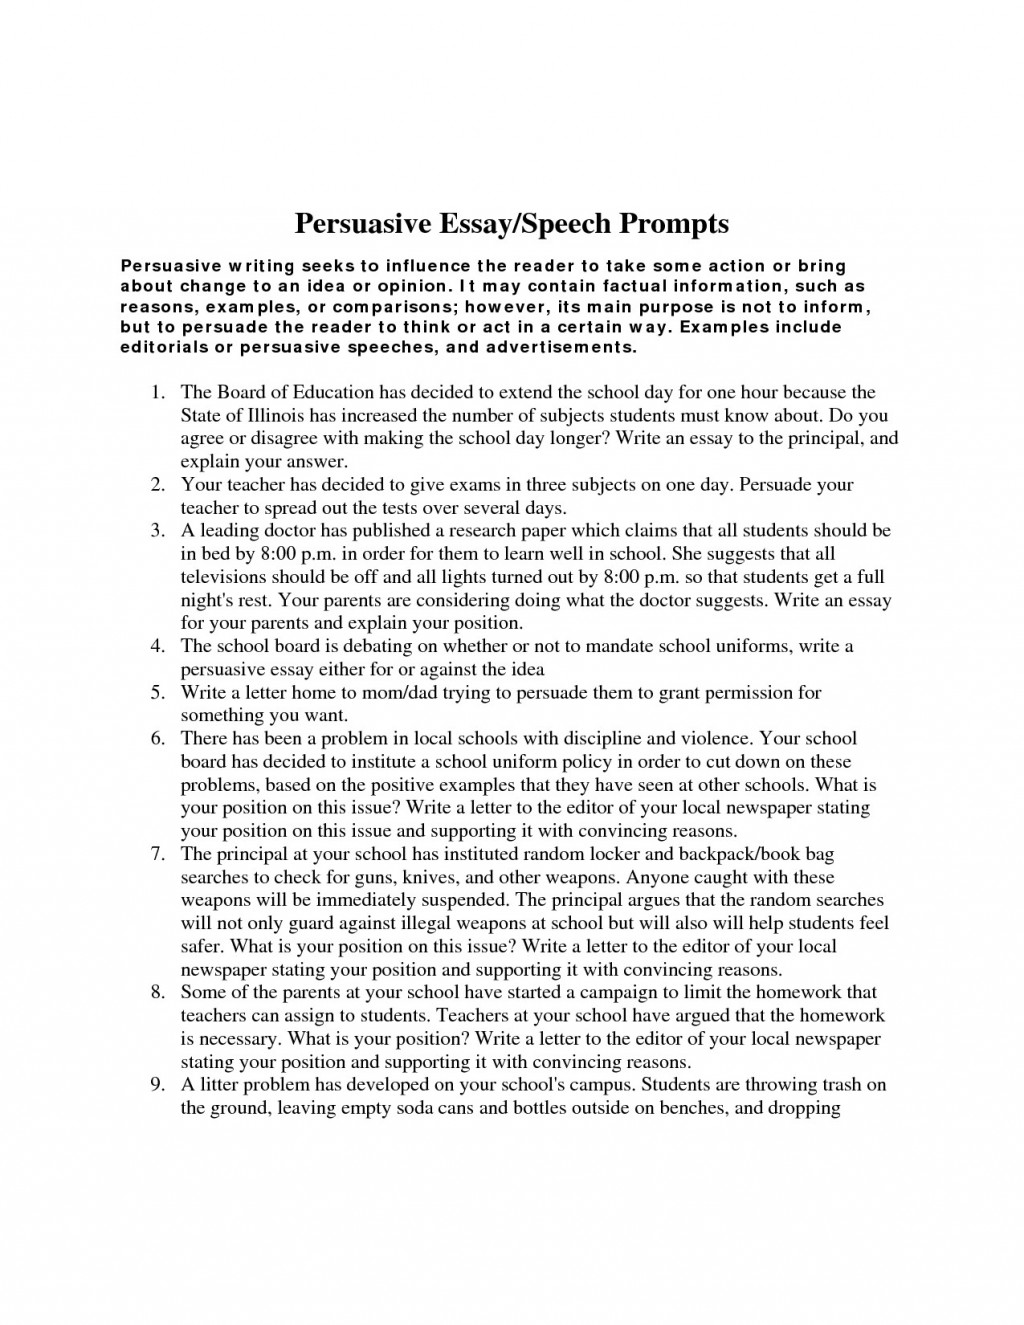 015 Persuasive Essay Prompts Essays For Middle School Shocking Argumentative Nonfiction Students Large